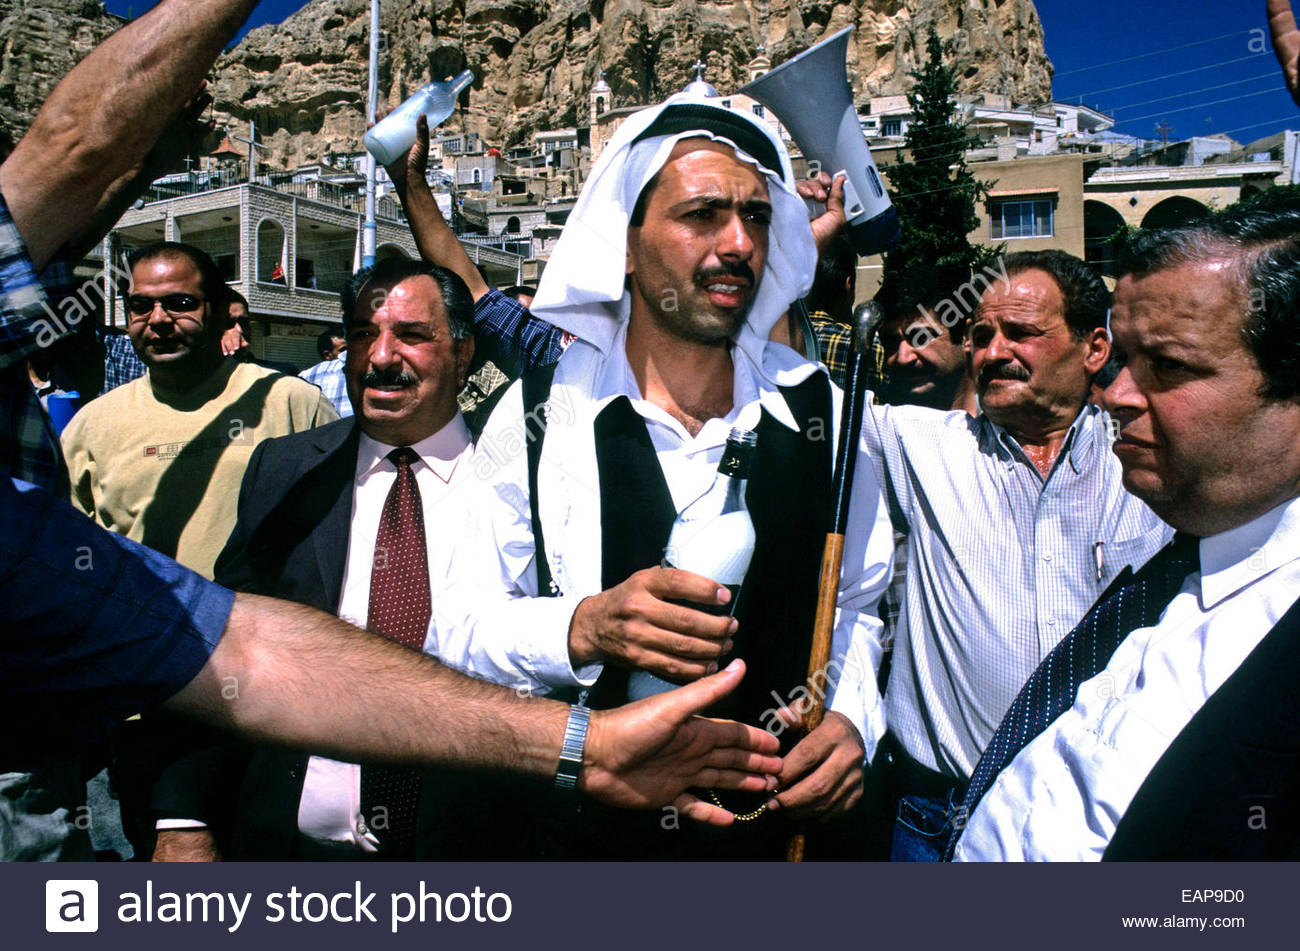 Christians during the Exaltation of the Cross Festival in the streets of Maaloula, Syria. - Stock Image